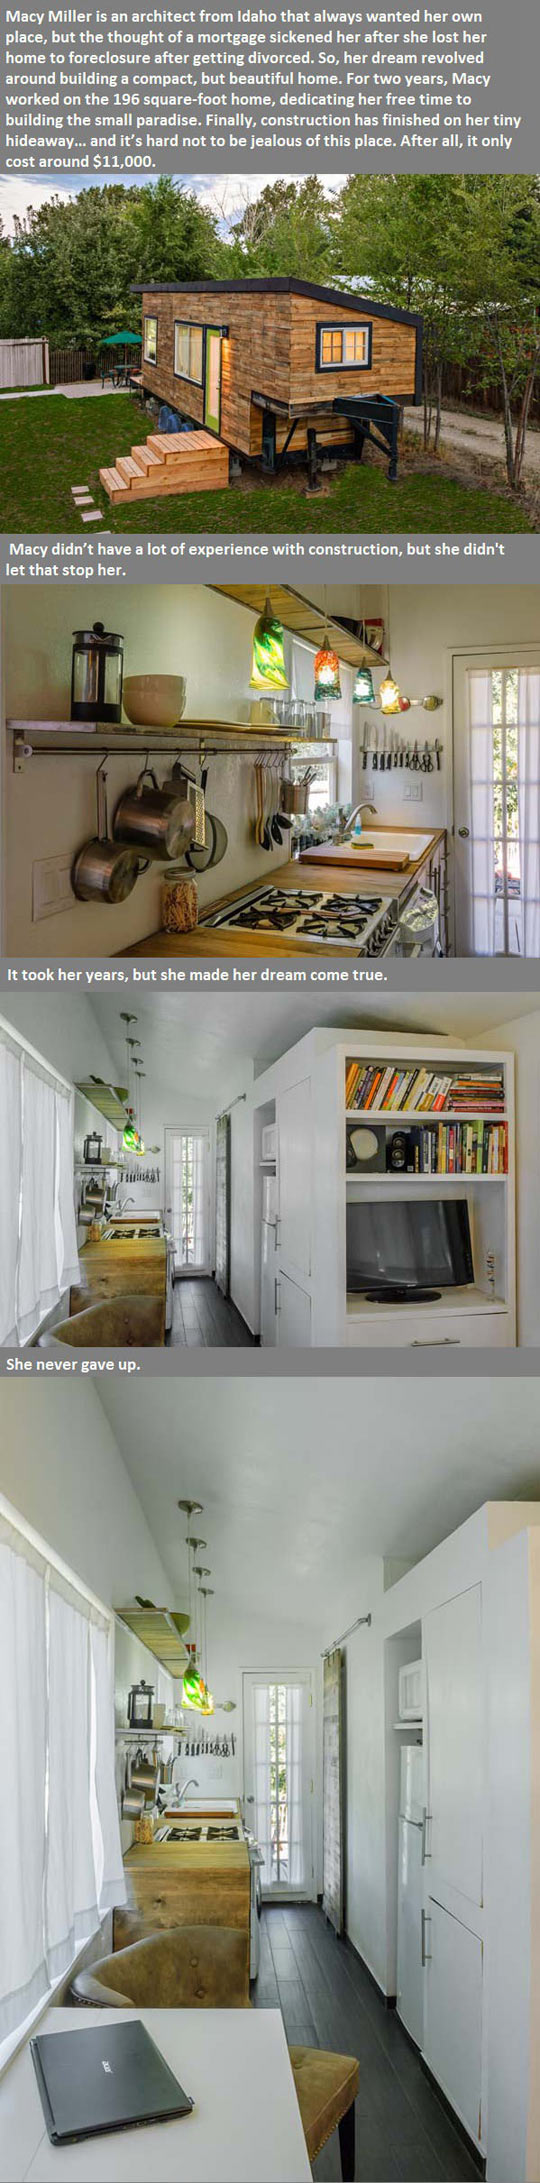 funny-house-mortgage-efficient-space-toilet